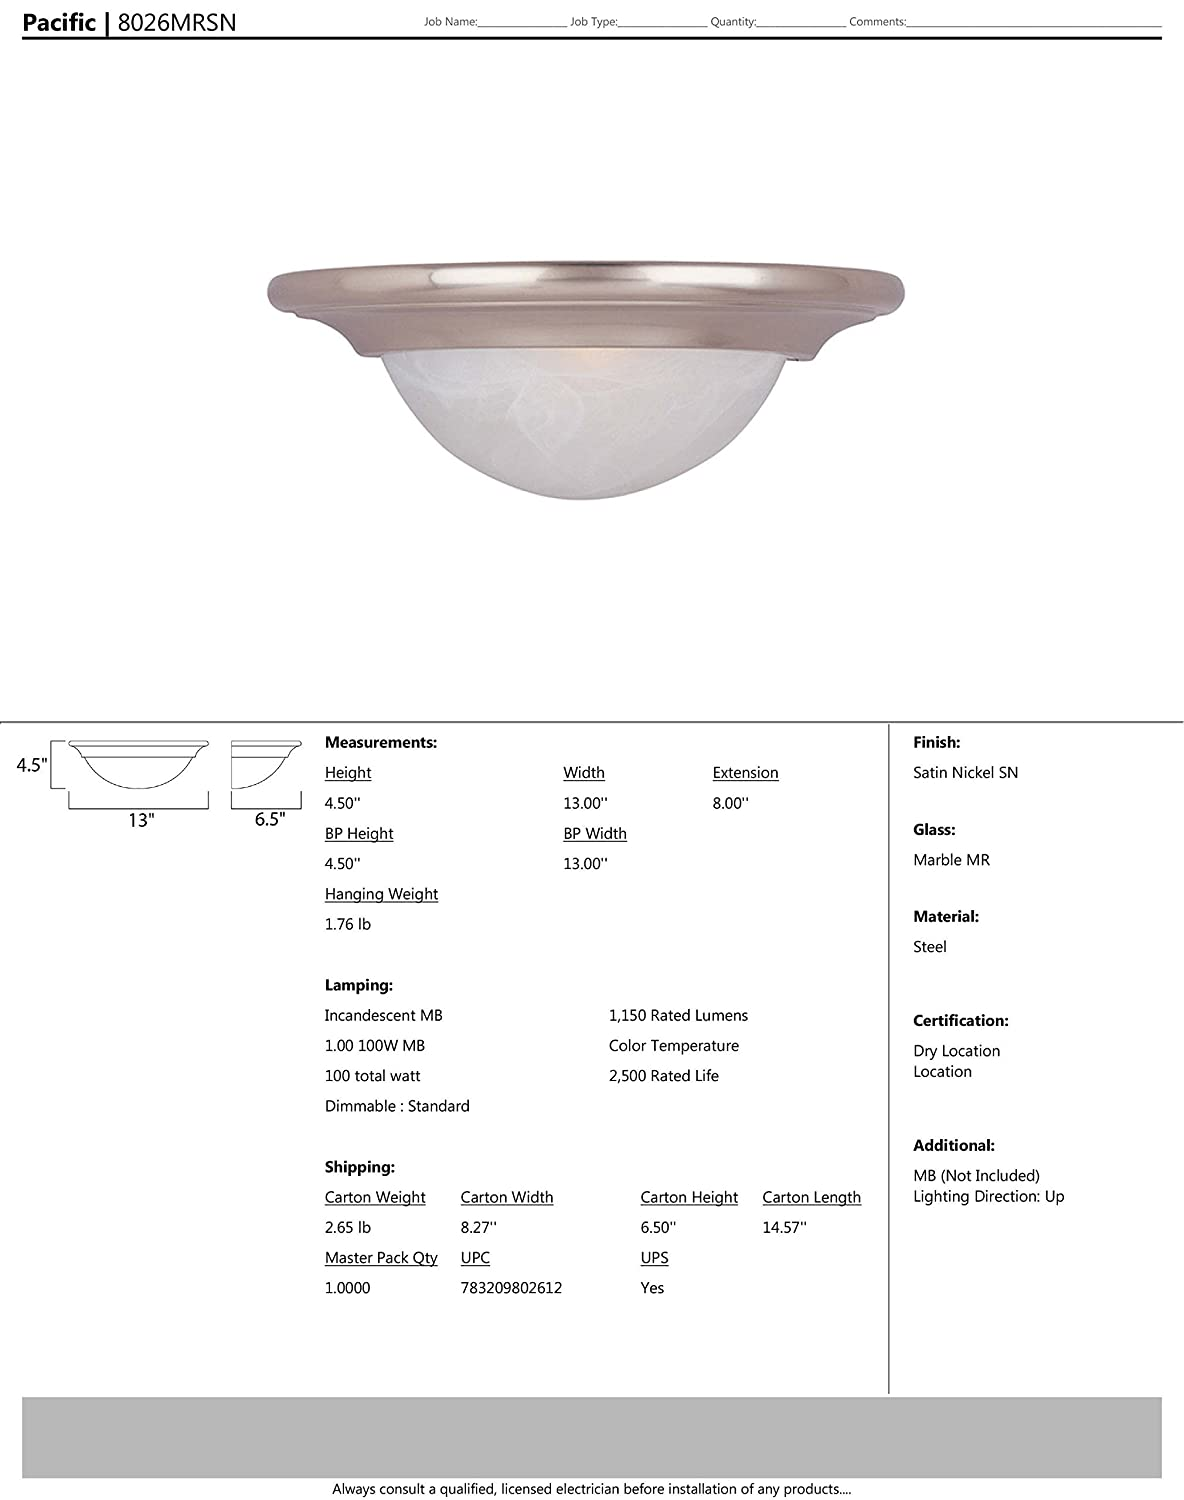 10350 Rated Lumens Marble Glass Standard Dimmable Glass Shade Material Maxim 8026MRSN Pacific 1-Light Wall Sconce MB Incandescent Incandescent Bulb 100W Max. Satin Nickel Finish Dry Safety Rating